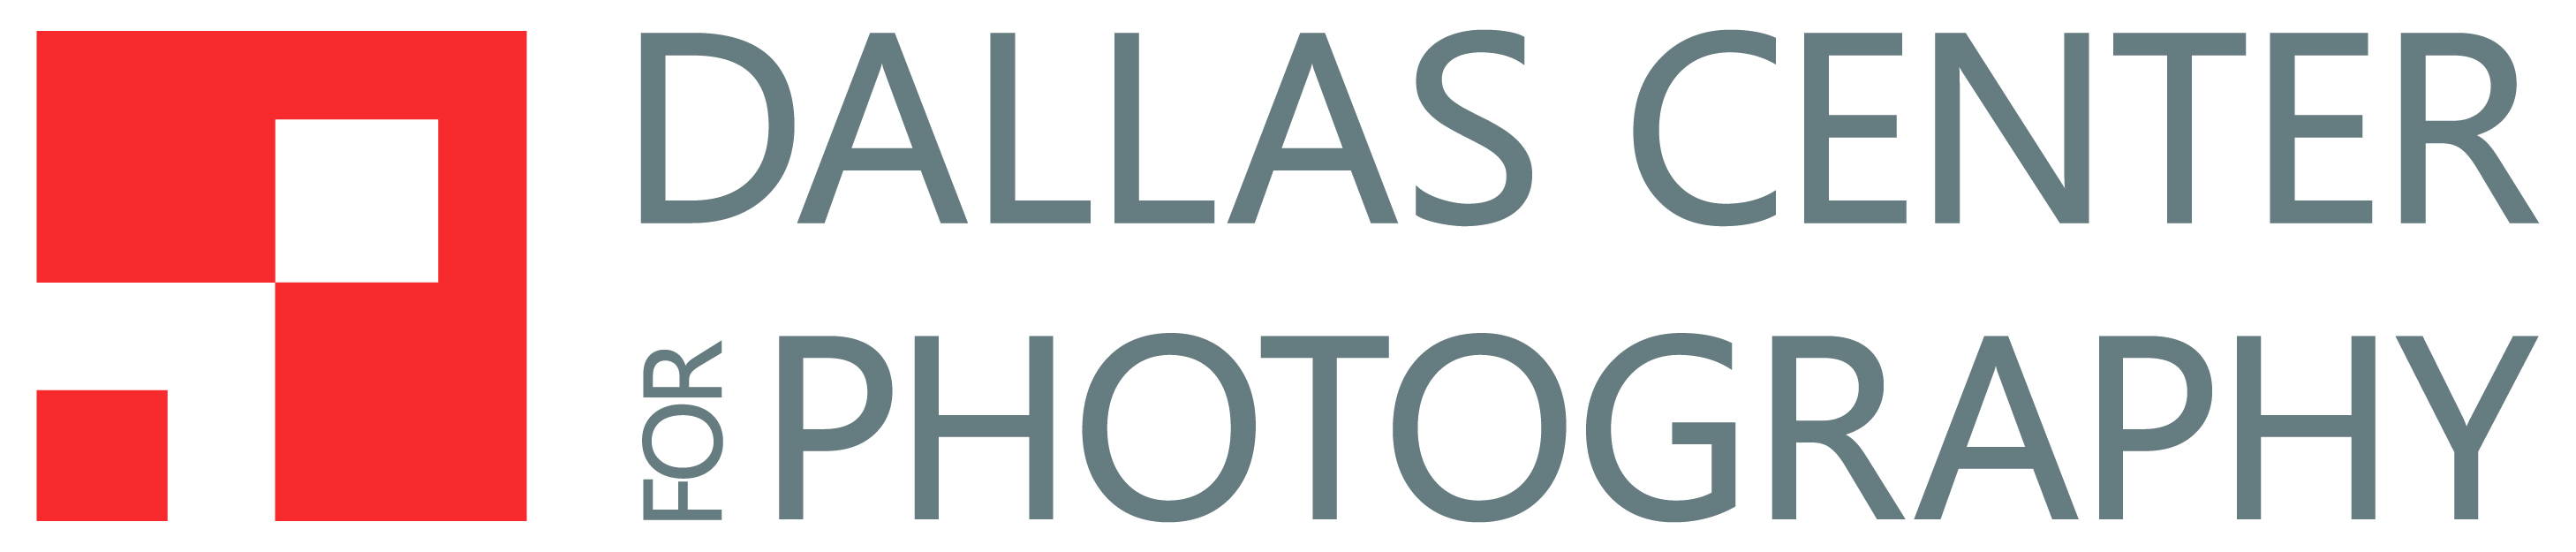 Dallas Center for Photography